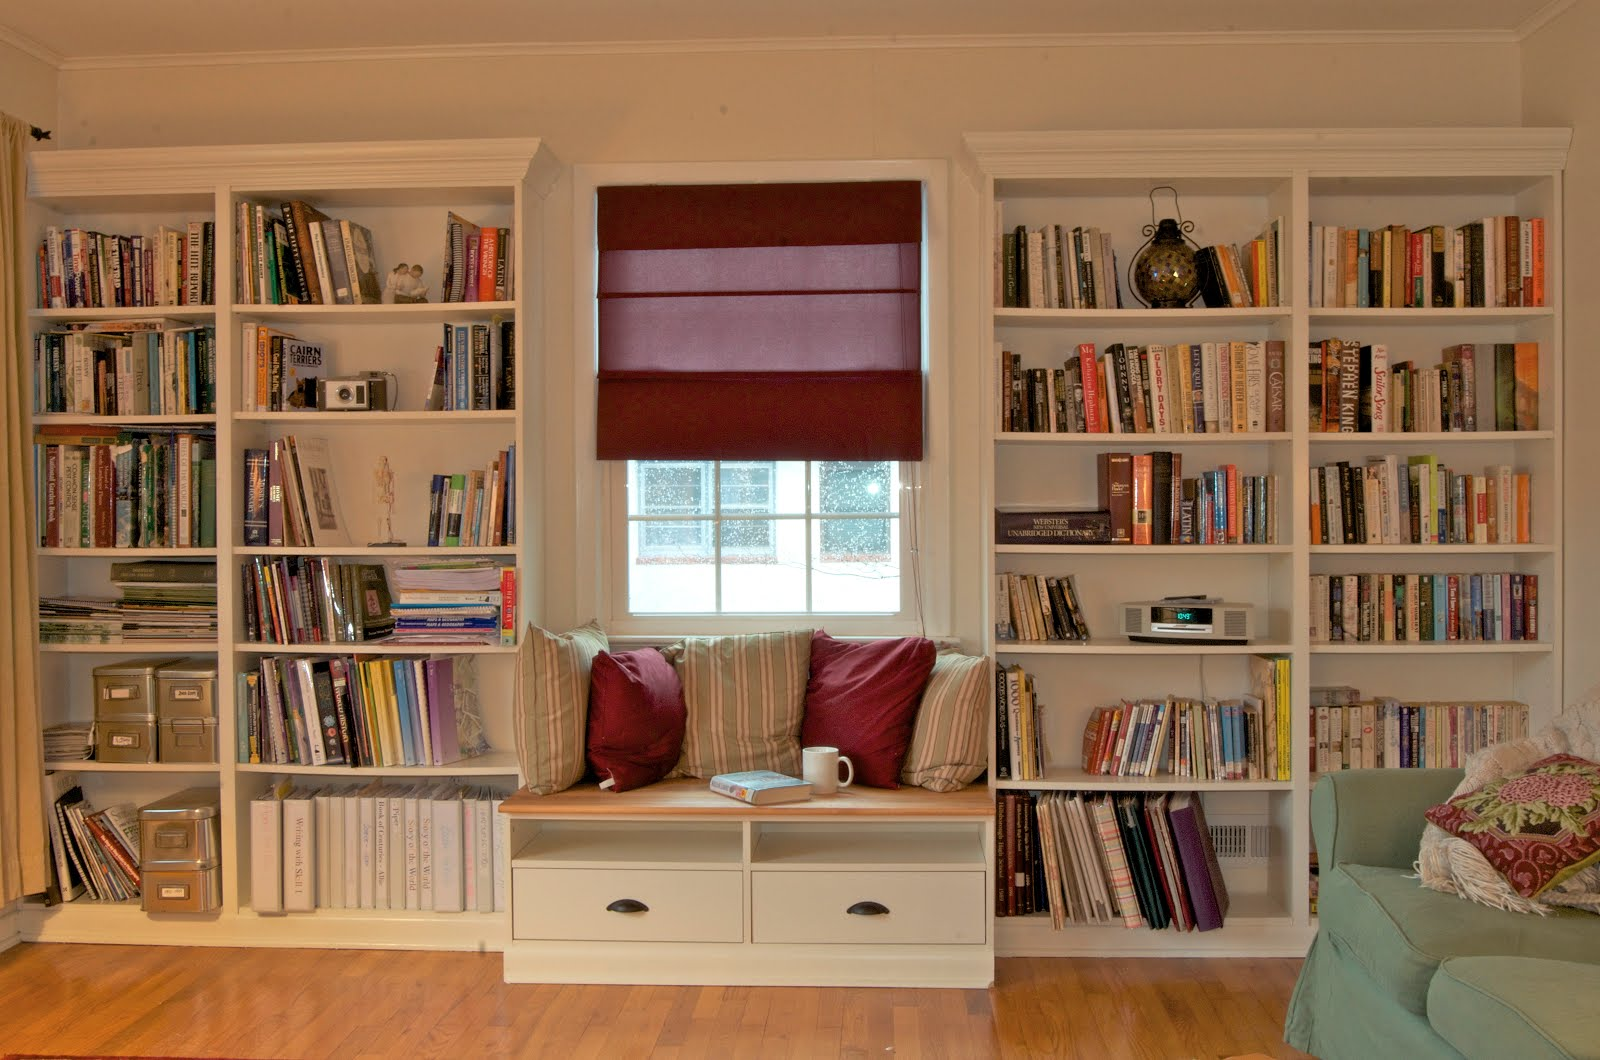 Book Shelfs Ikea Hacks: Ikea Hackers: Built In Bookshelves With Window